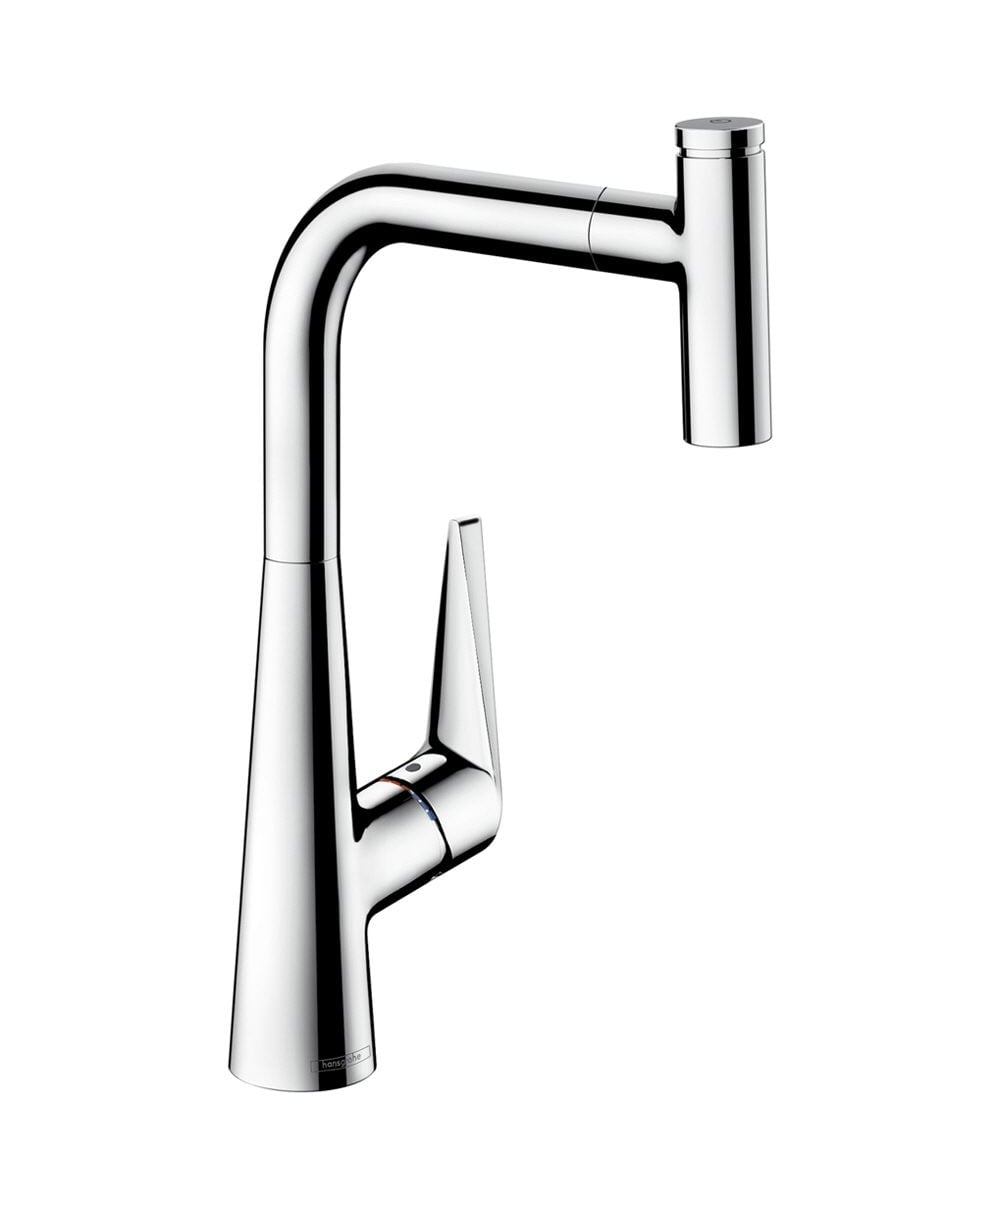 Hansgrohe Talis Select S Single Lever Kitchen Mixer 300 With Pull Out Spout